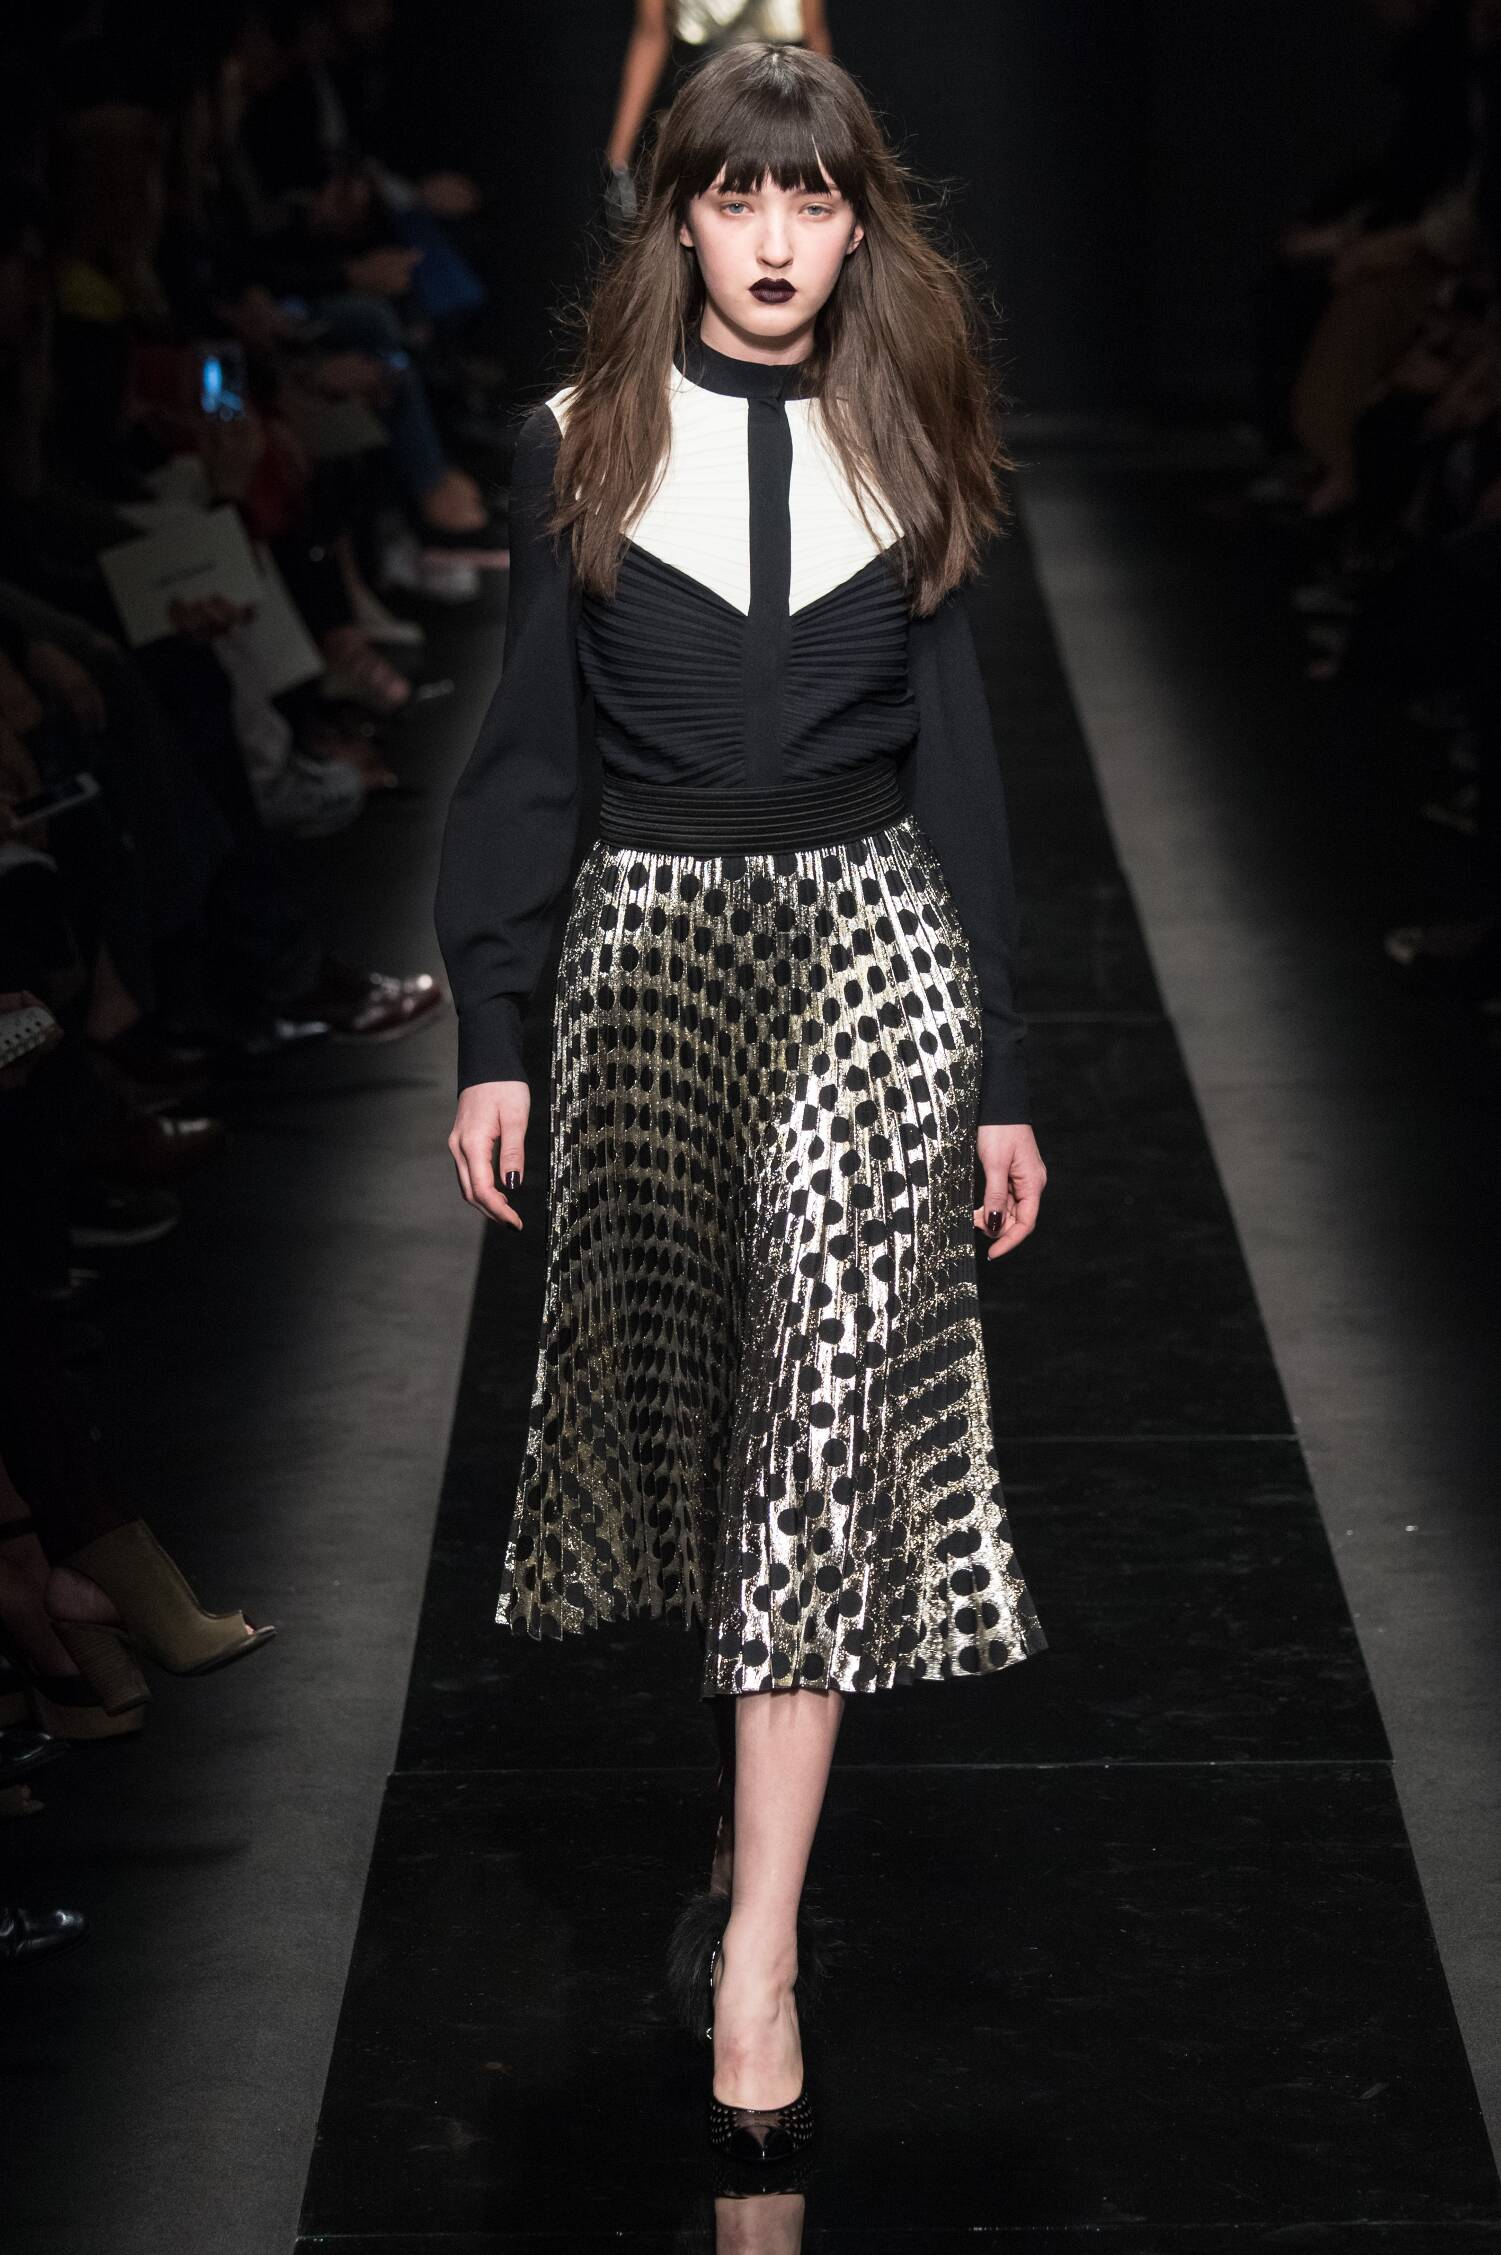 Emanuel Ungaro Collection Fall 2015 Catwalk